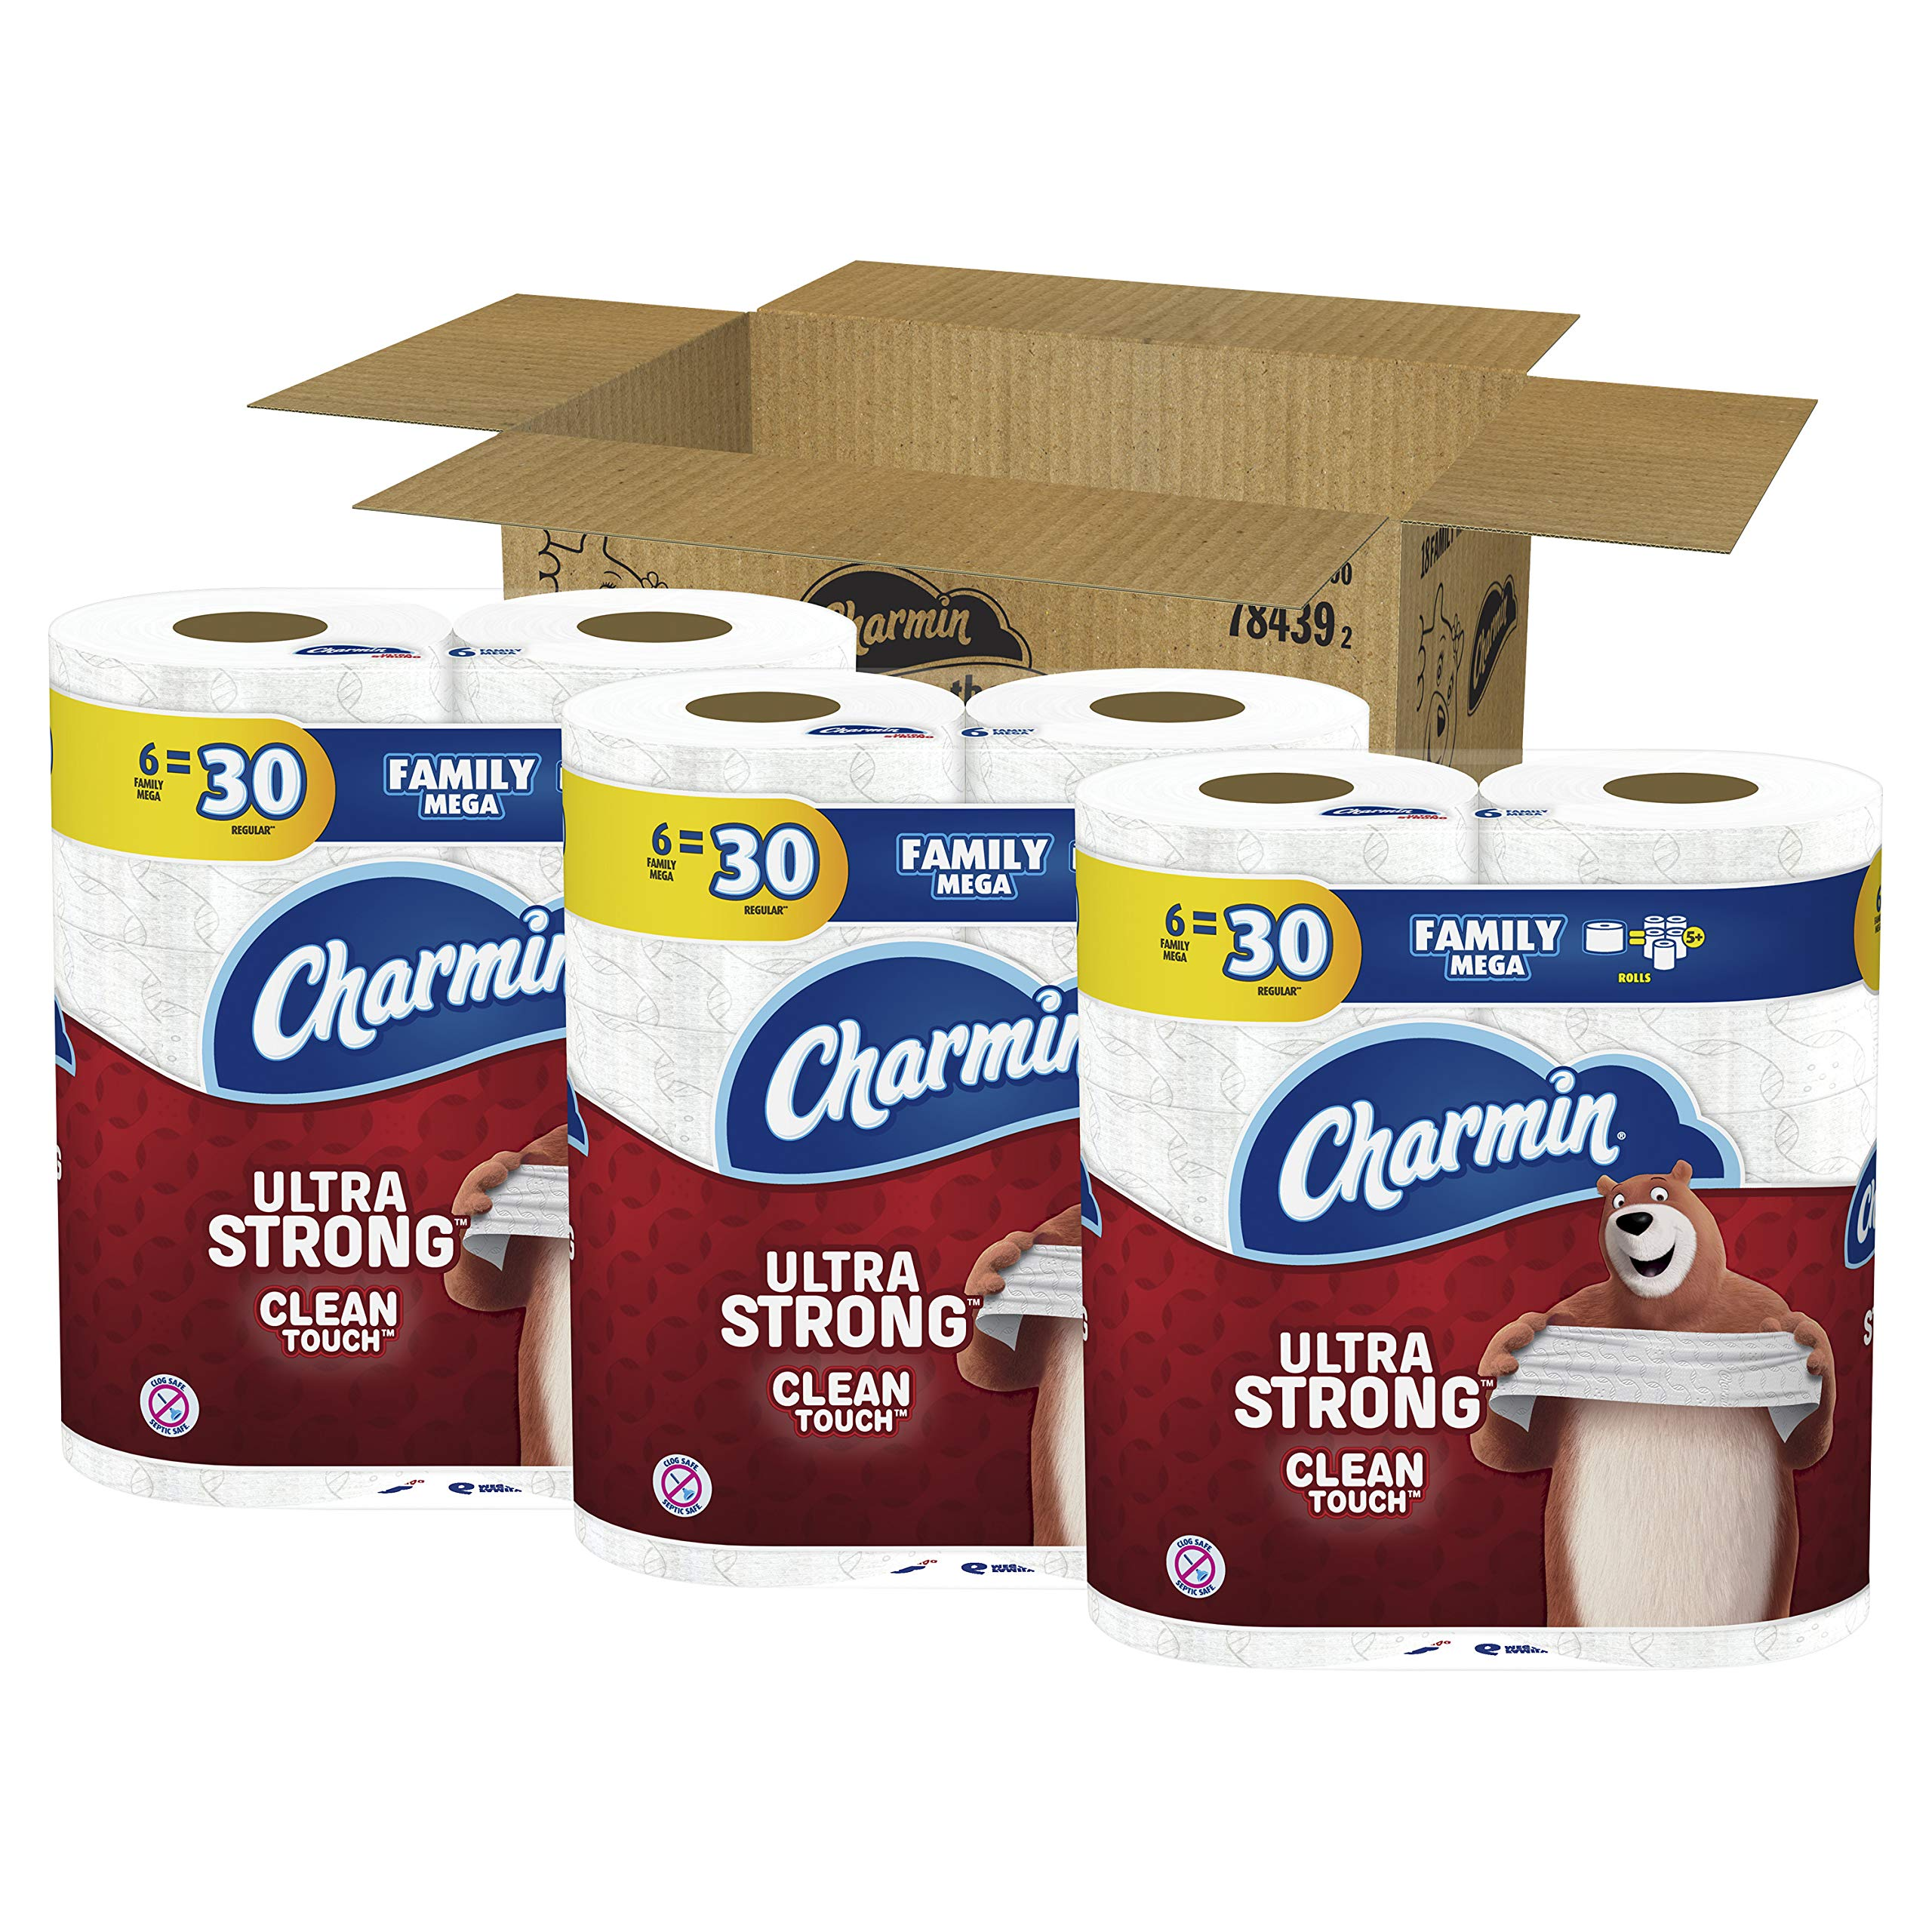 Charmin Toilet Paper Ebay: Charmin Ultra Strong Clean Touch Toilet Paper, Family Mega